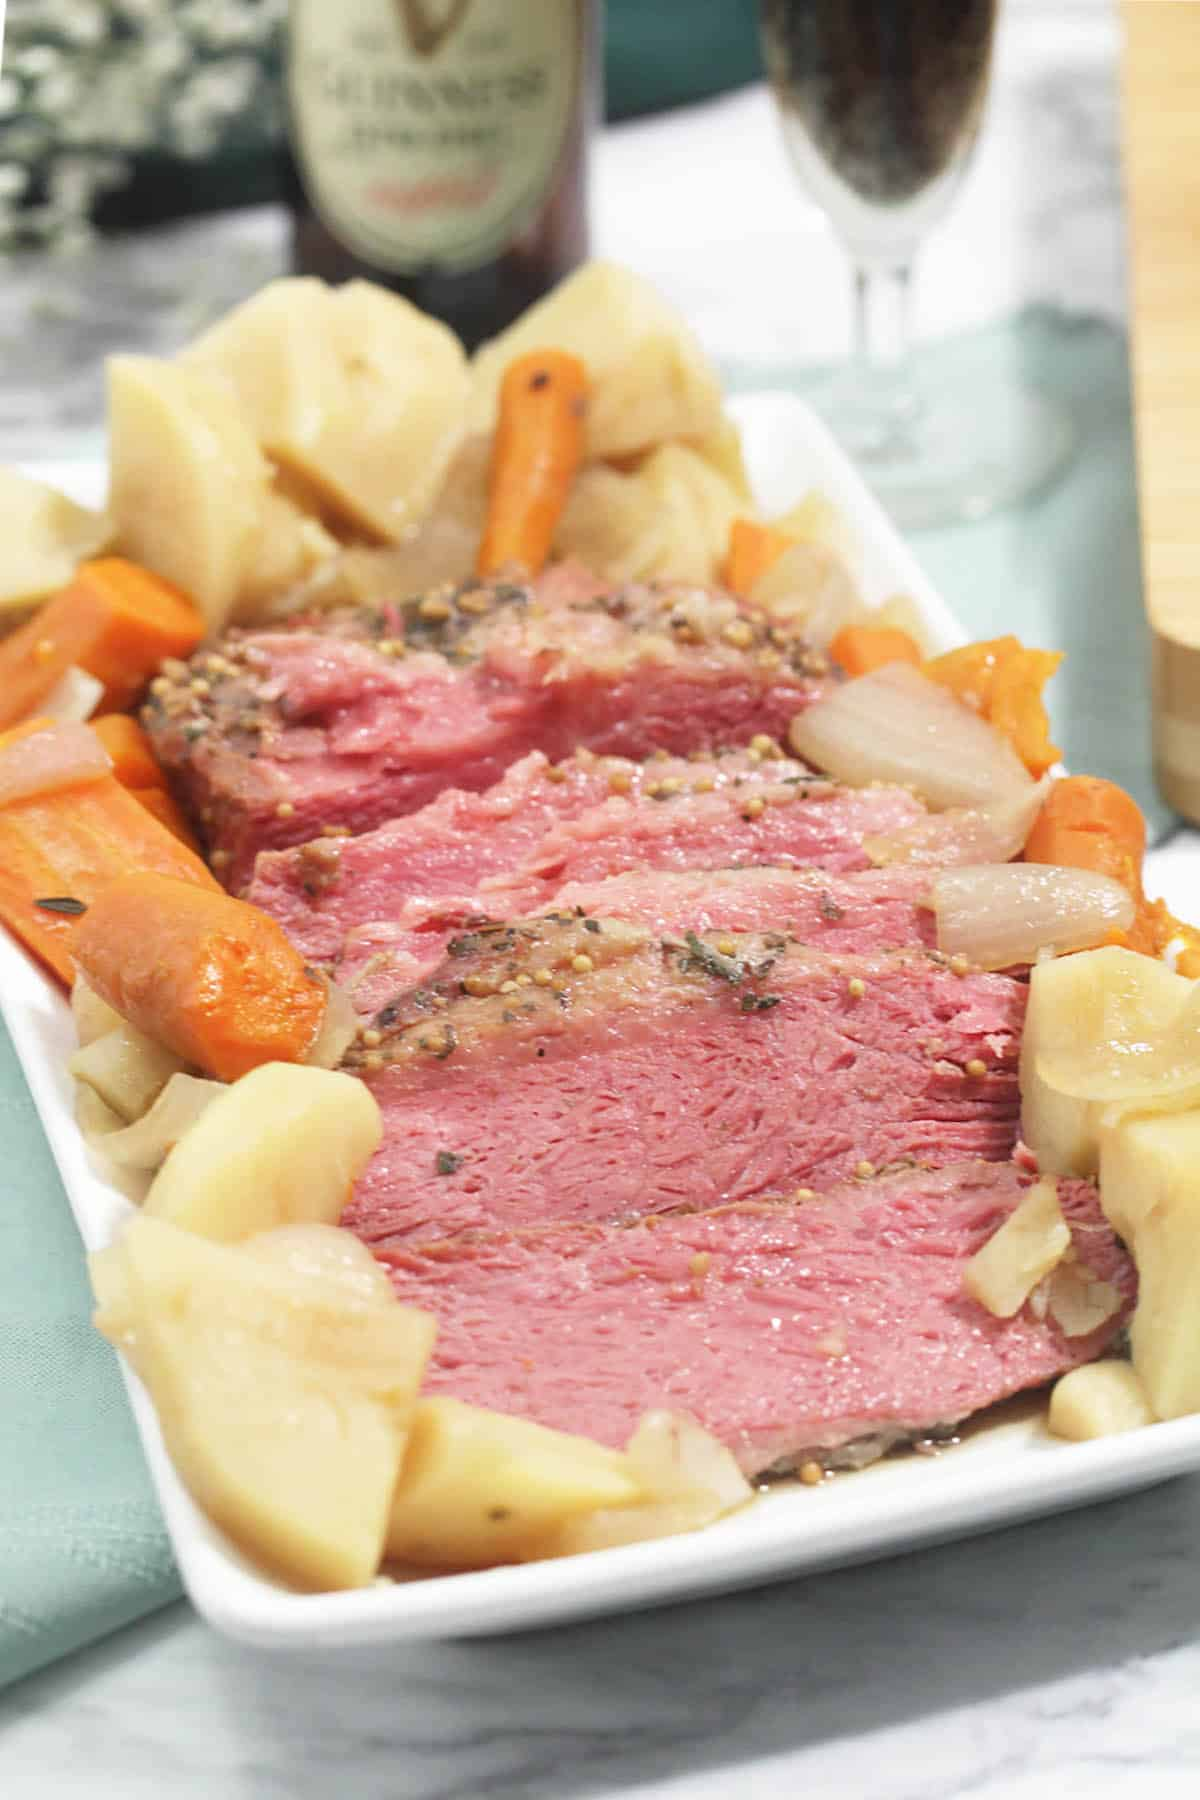 Siced corned beef surrounded by potatoes and vegetables on white platter.